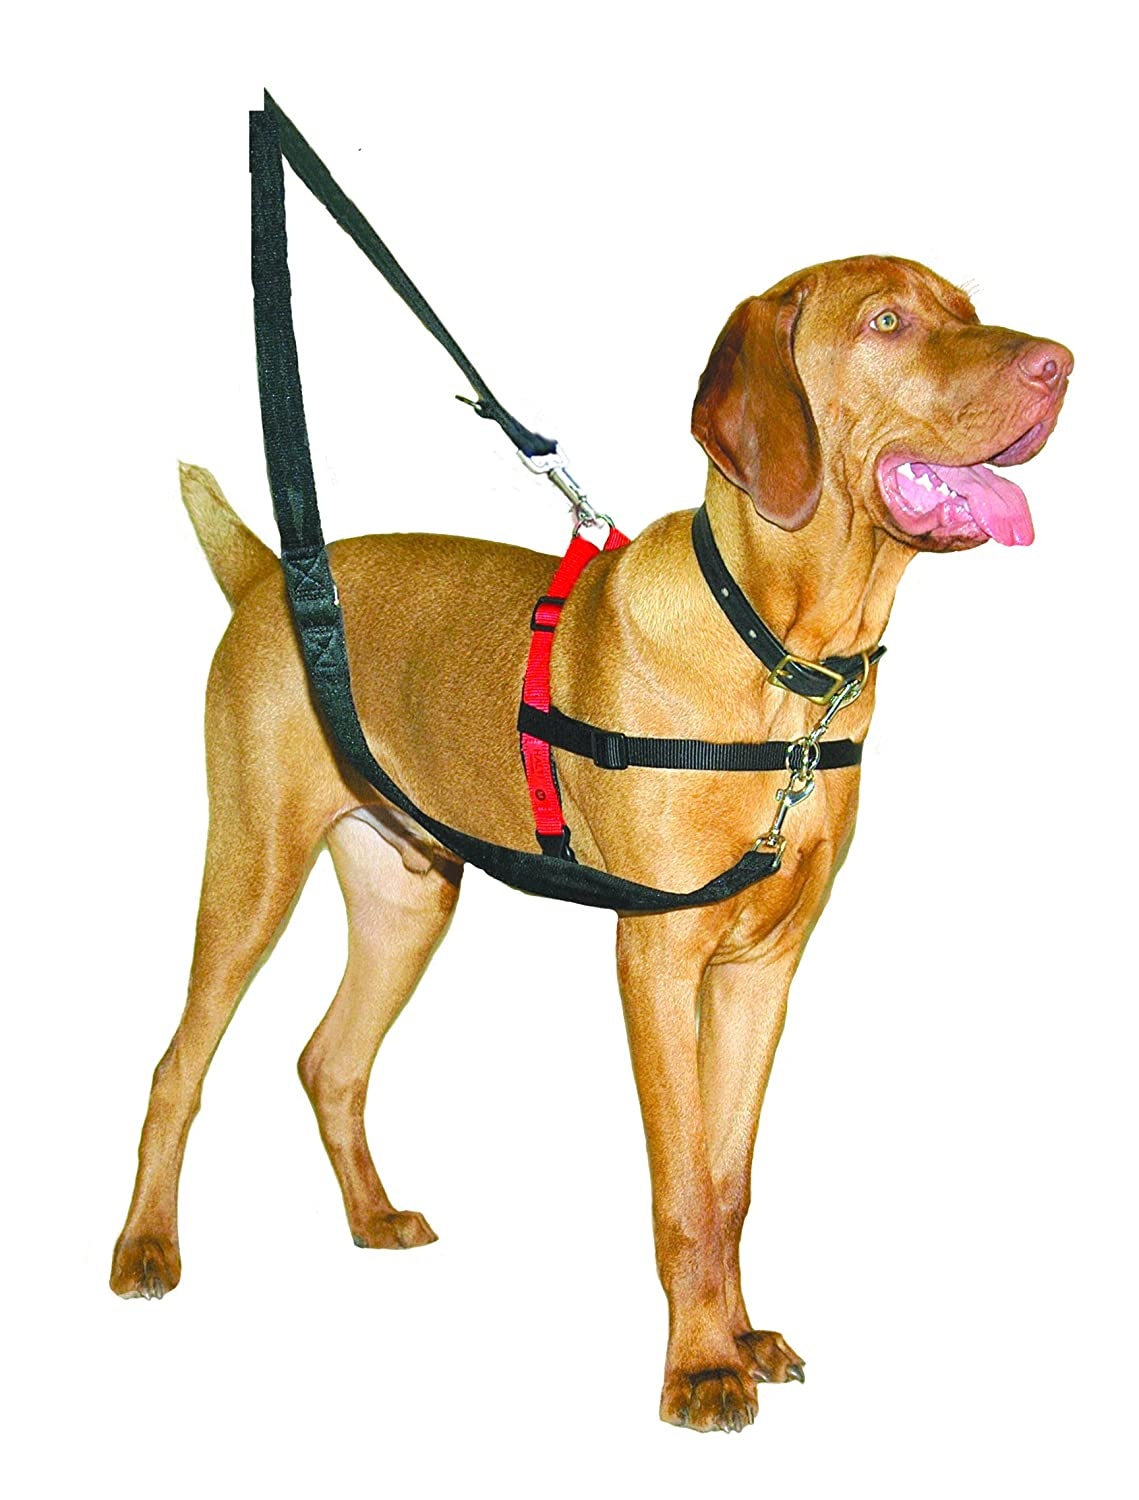 81yXAwcgK L._SL1500_ amazon com the company of animals halti training harness